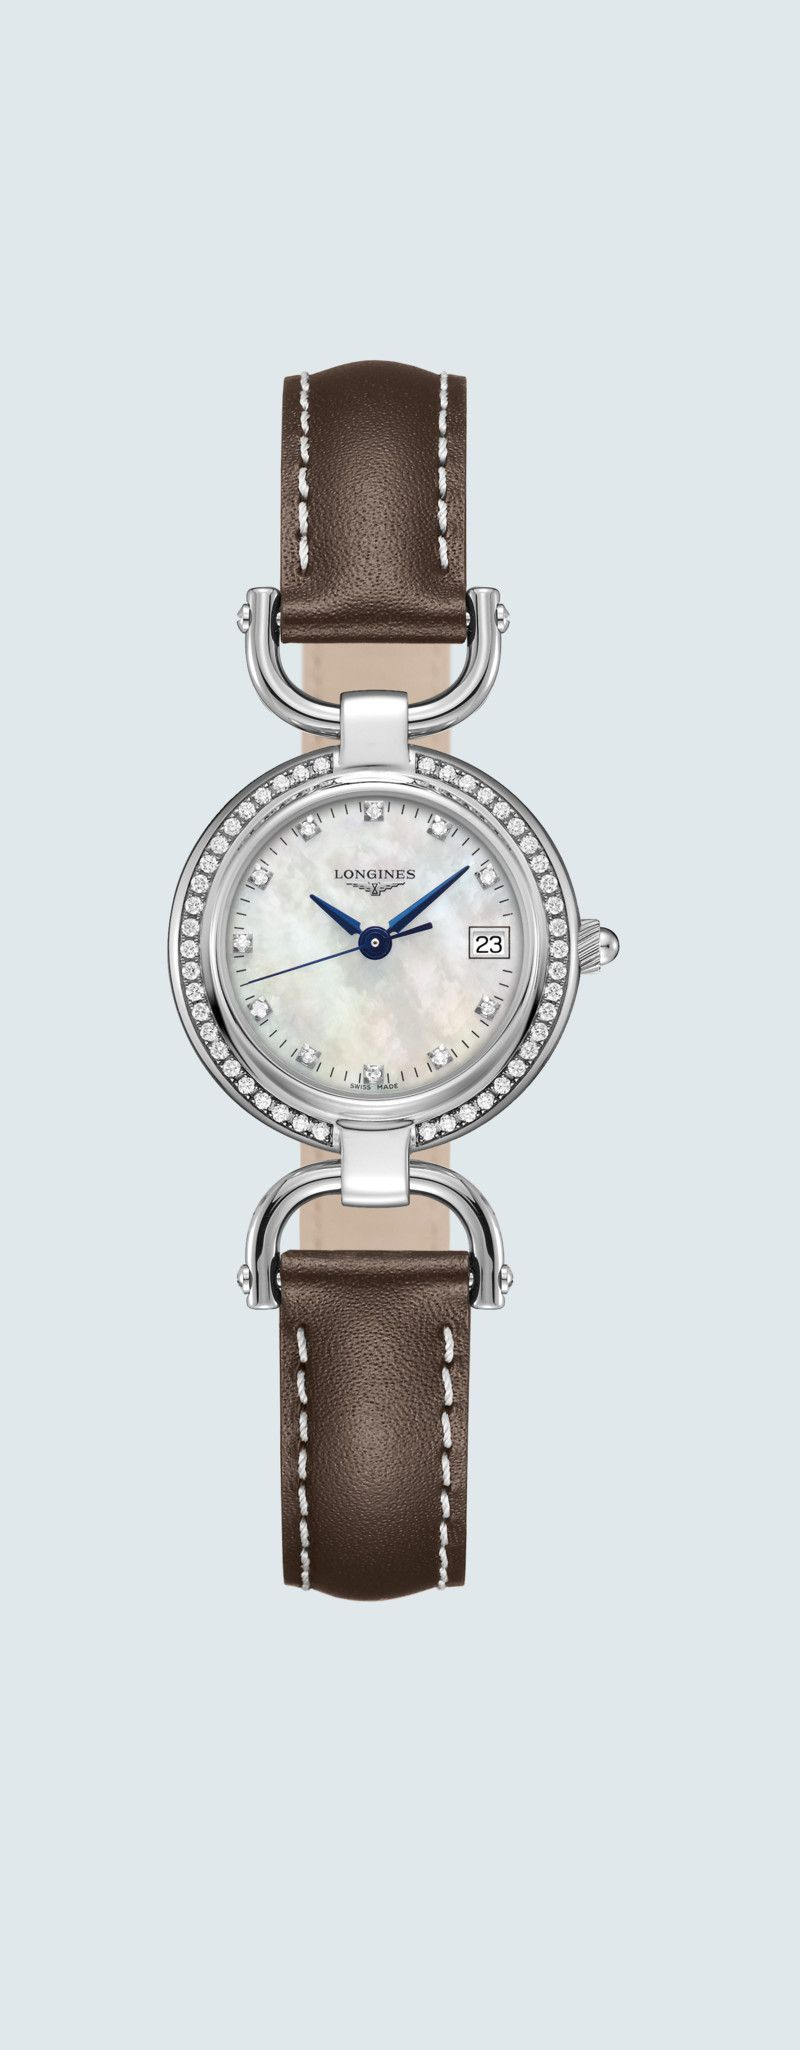 26.50 mm Edelstahl case with Weißes Perlmutt dial and Lederarmband Braun strap - case zoom view